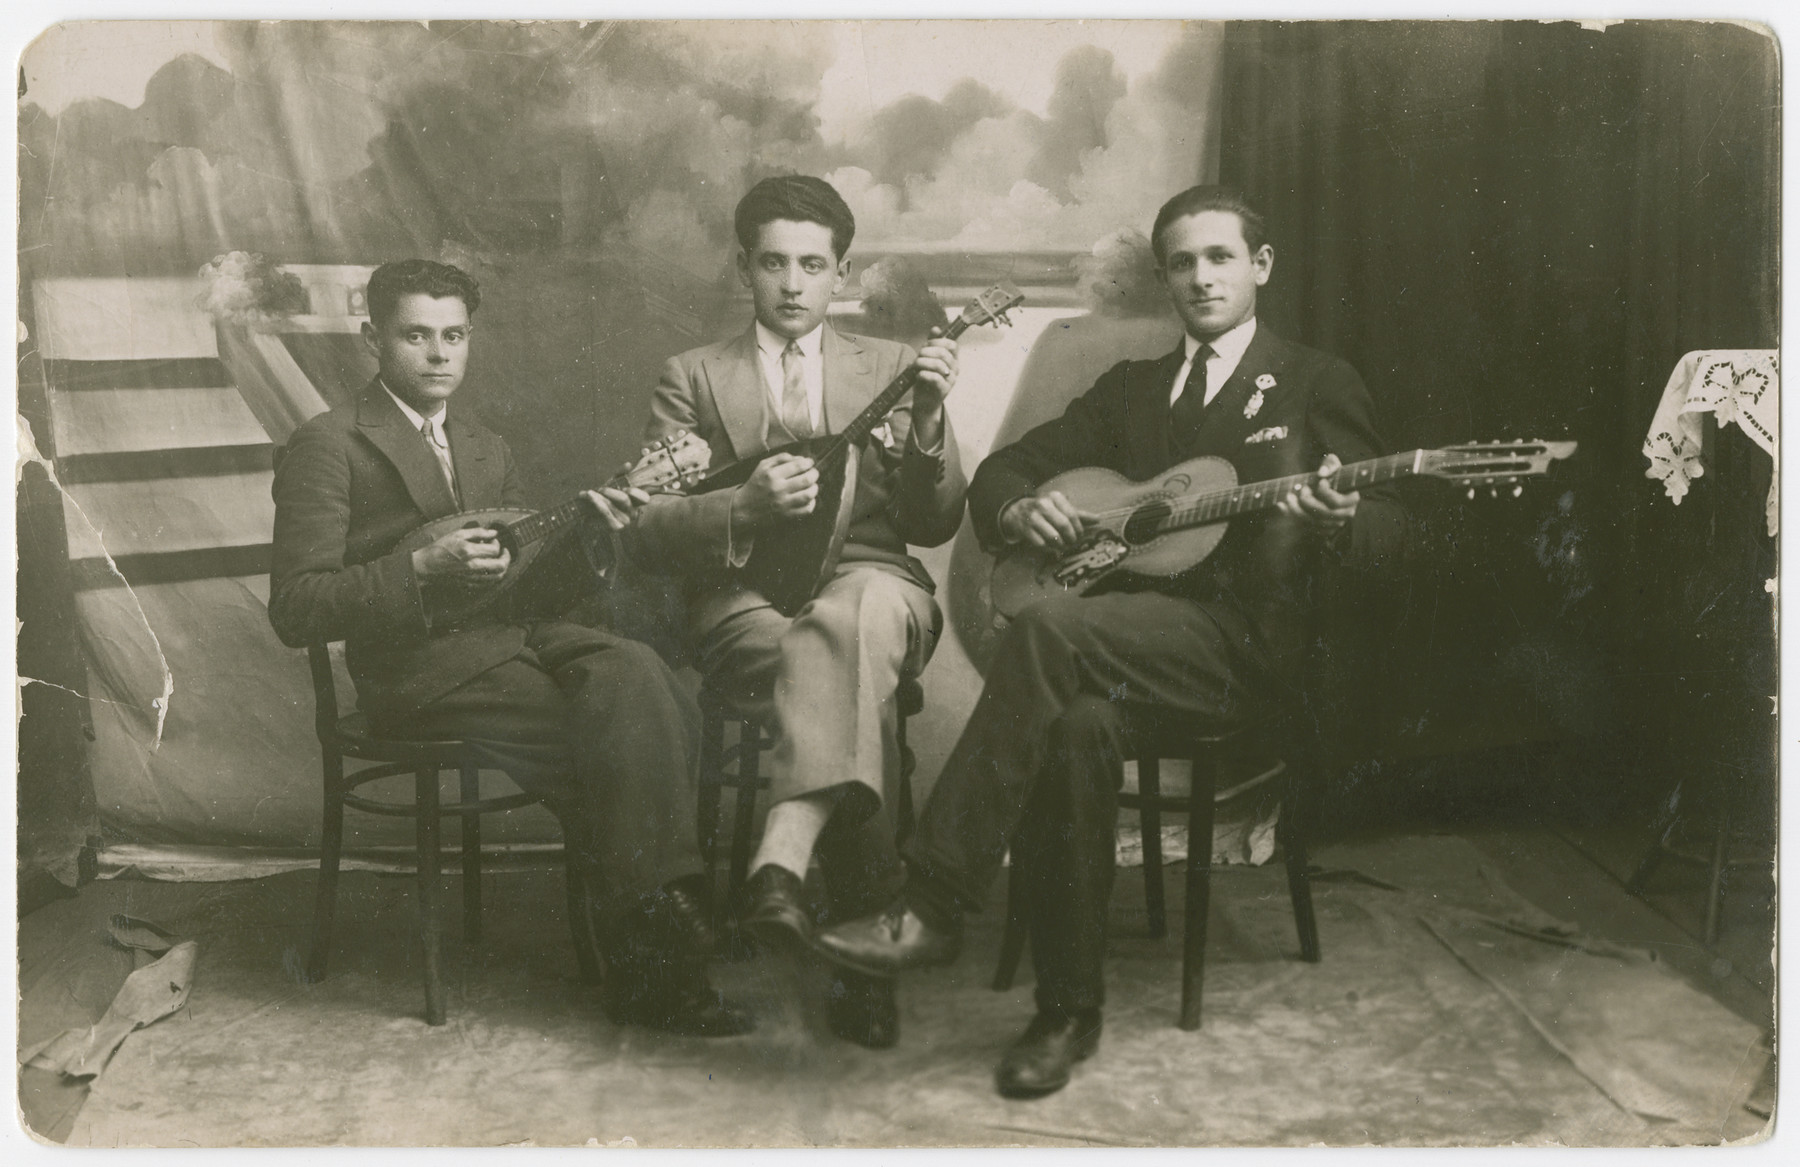 Studio portrait of three Polish Jewish friends playing stringed instruments in an ensemble.  Yehuda Bielski is pictured on the right with a guitar.